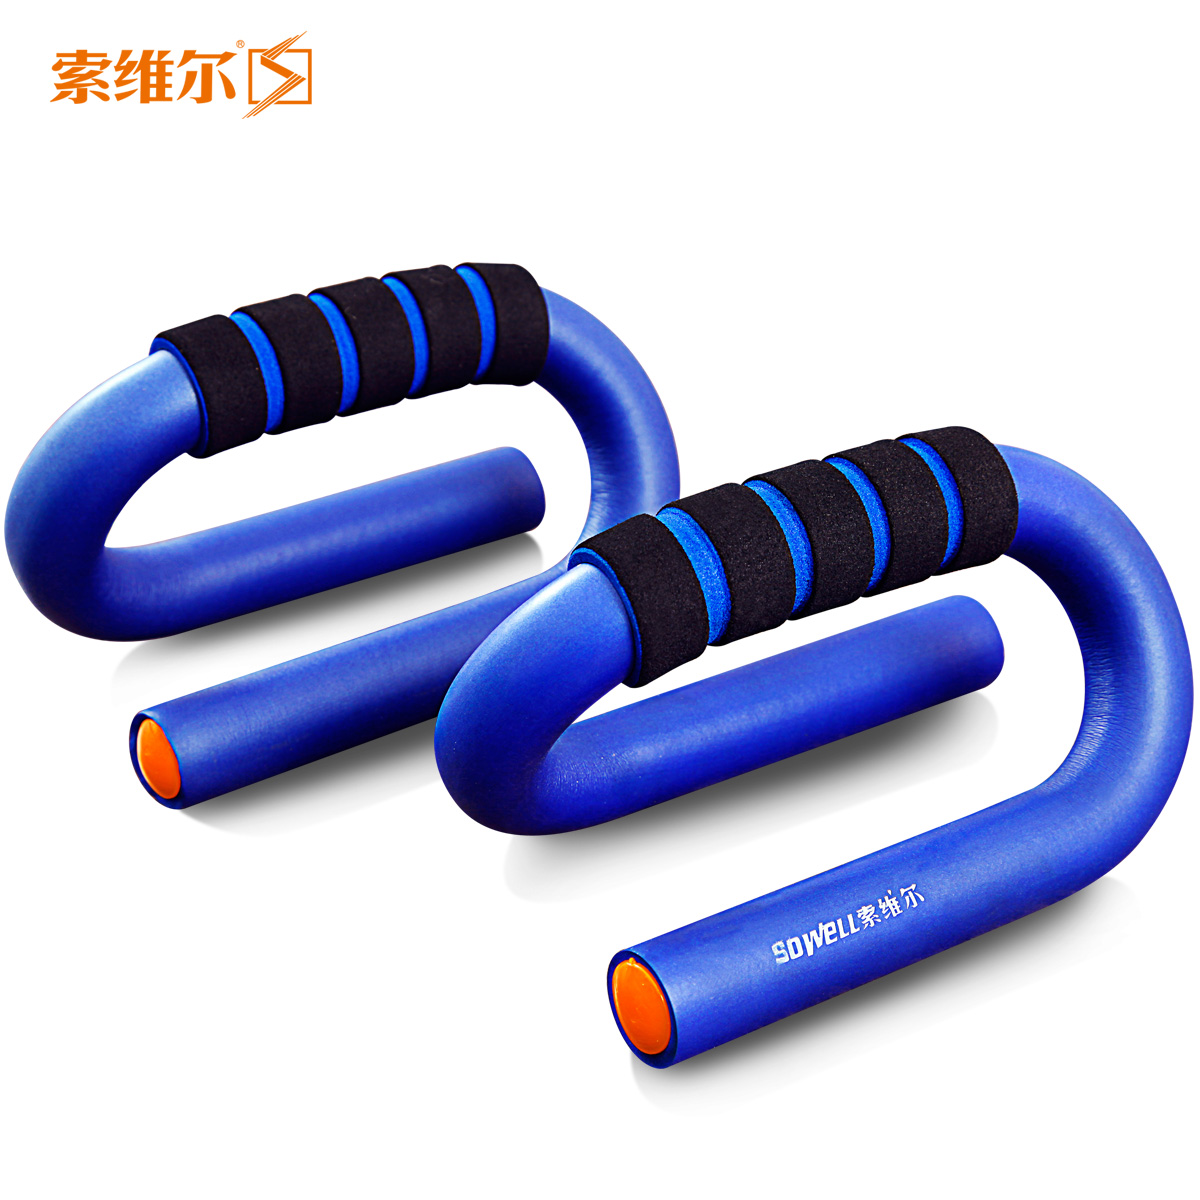 S-type push-ups pushups stent Sports fitness equipment home exercise chest muscle arms sporting goods